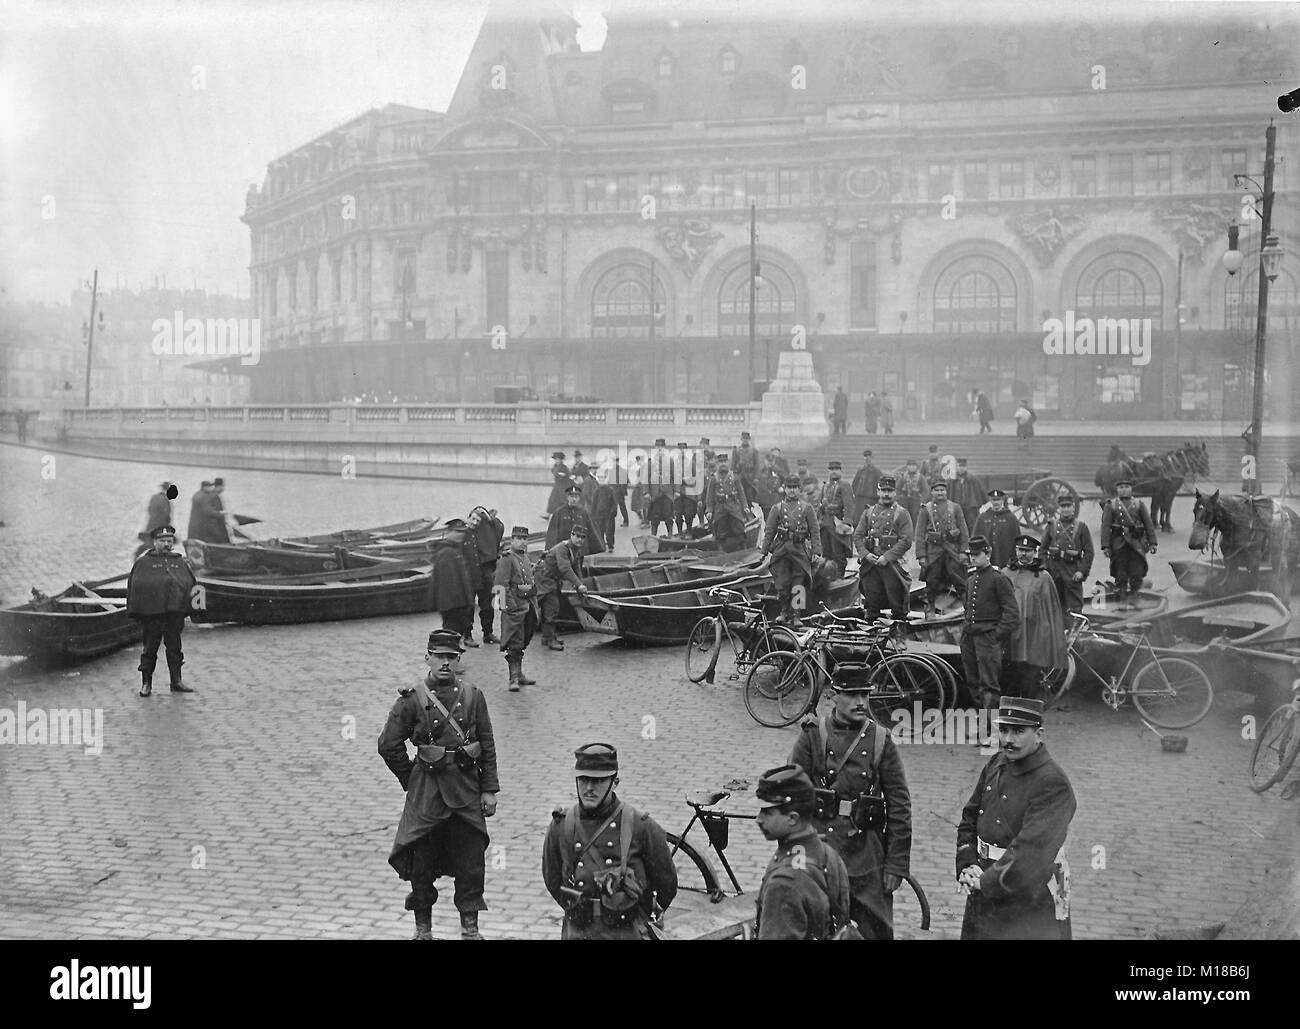 The historic flooding of Paris in the year 1910, army engineers with boats in front of the Gare de Lyon - Stock Image